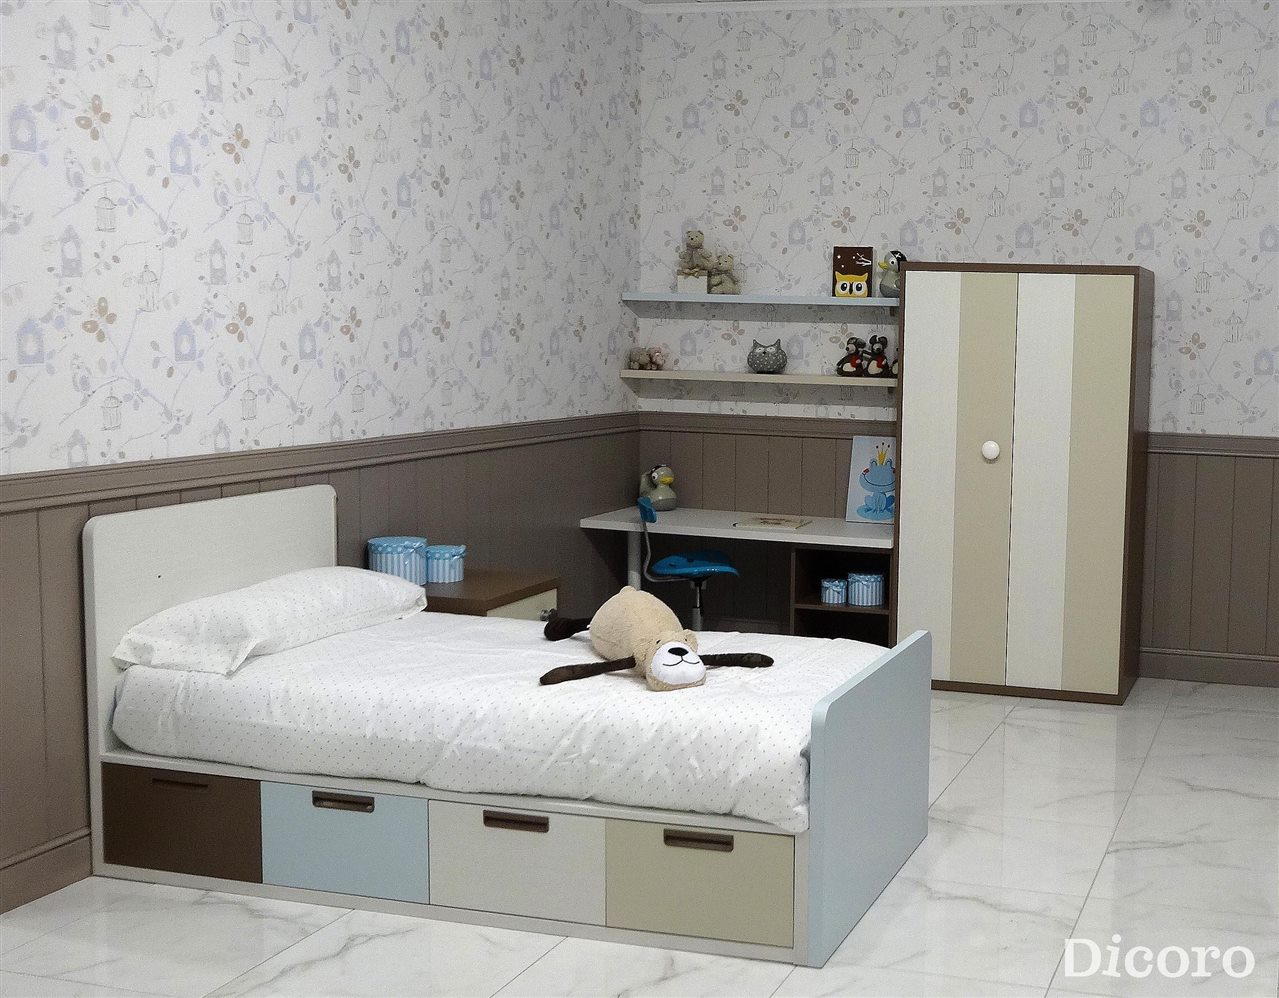 Tendencias Dormitorios 2017 7 Tendencias Decoración Dormitorios 2016 2017